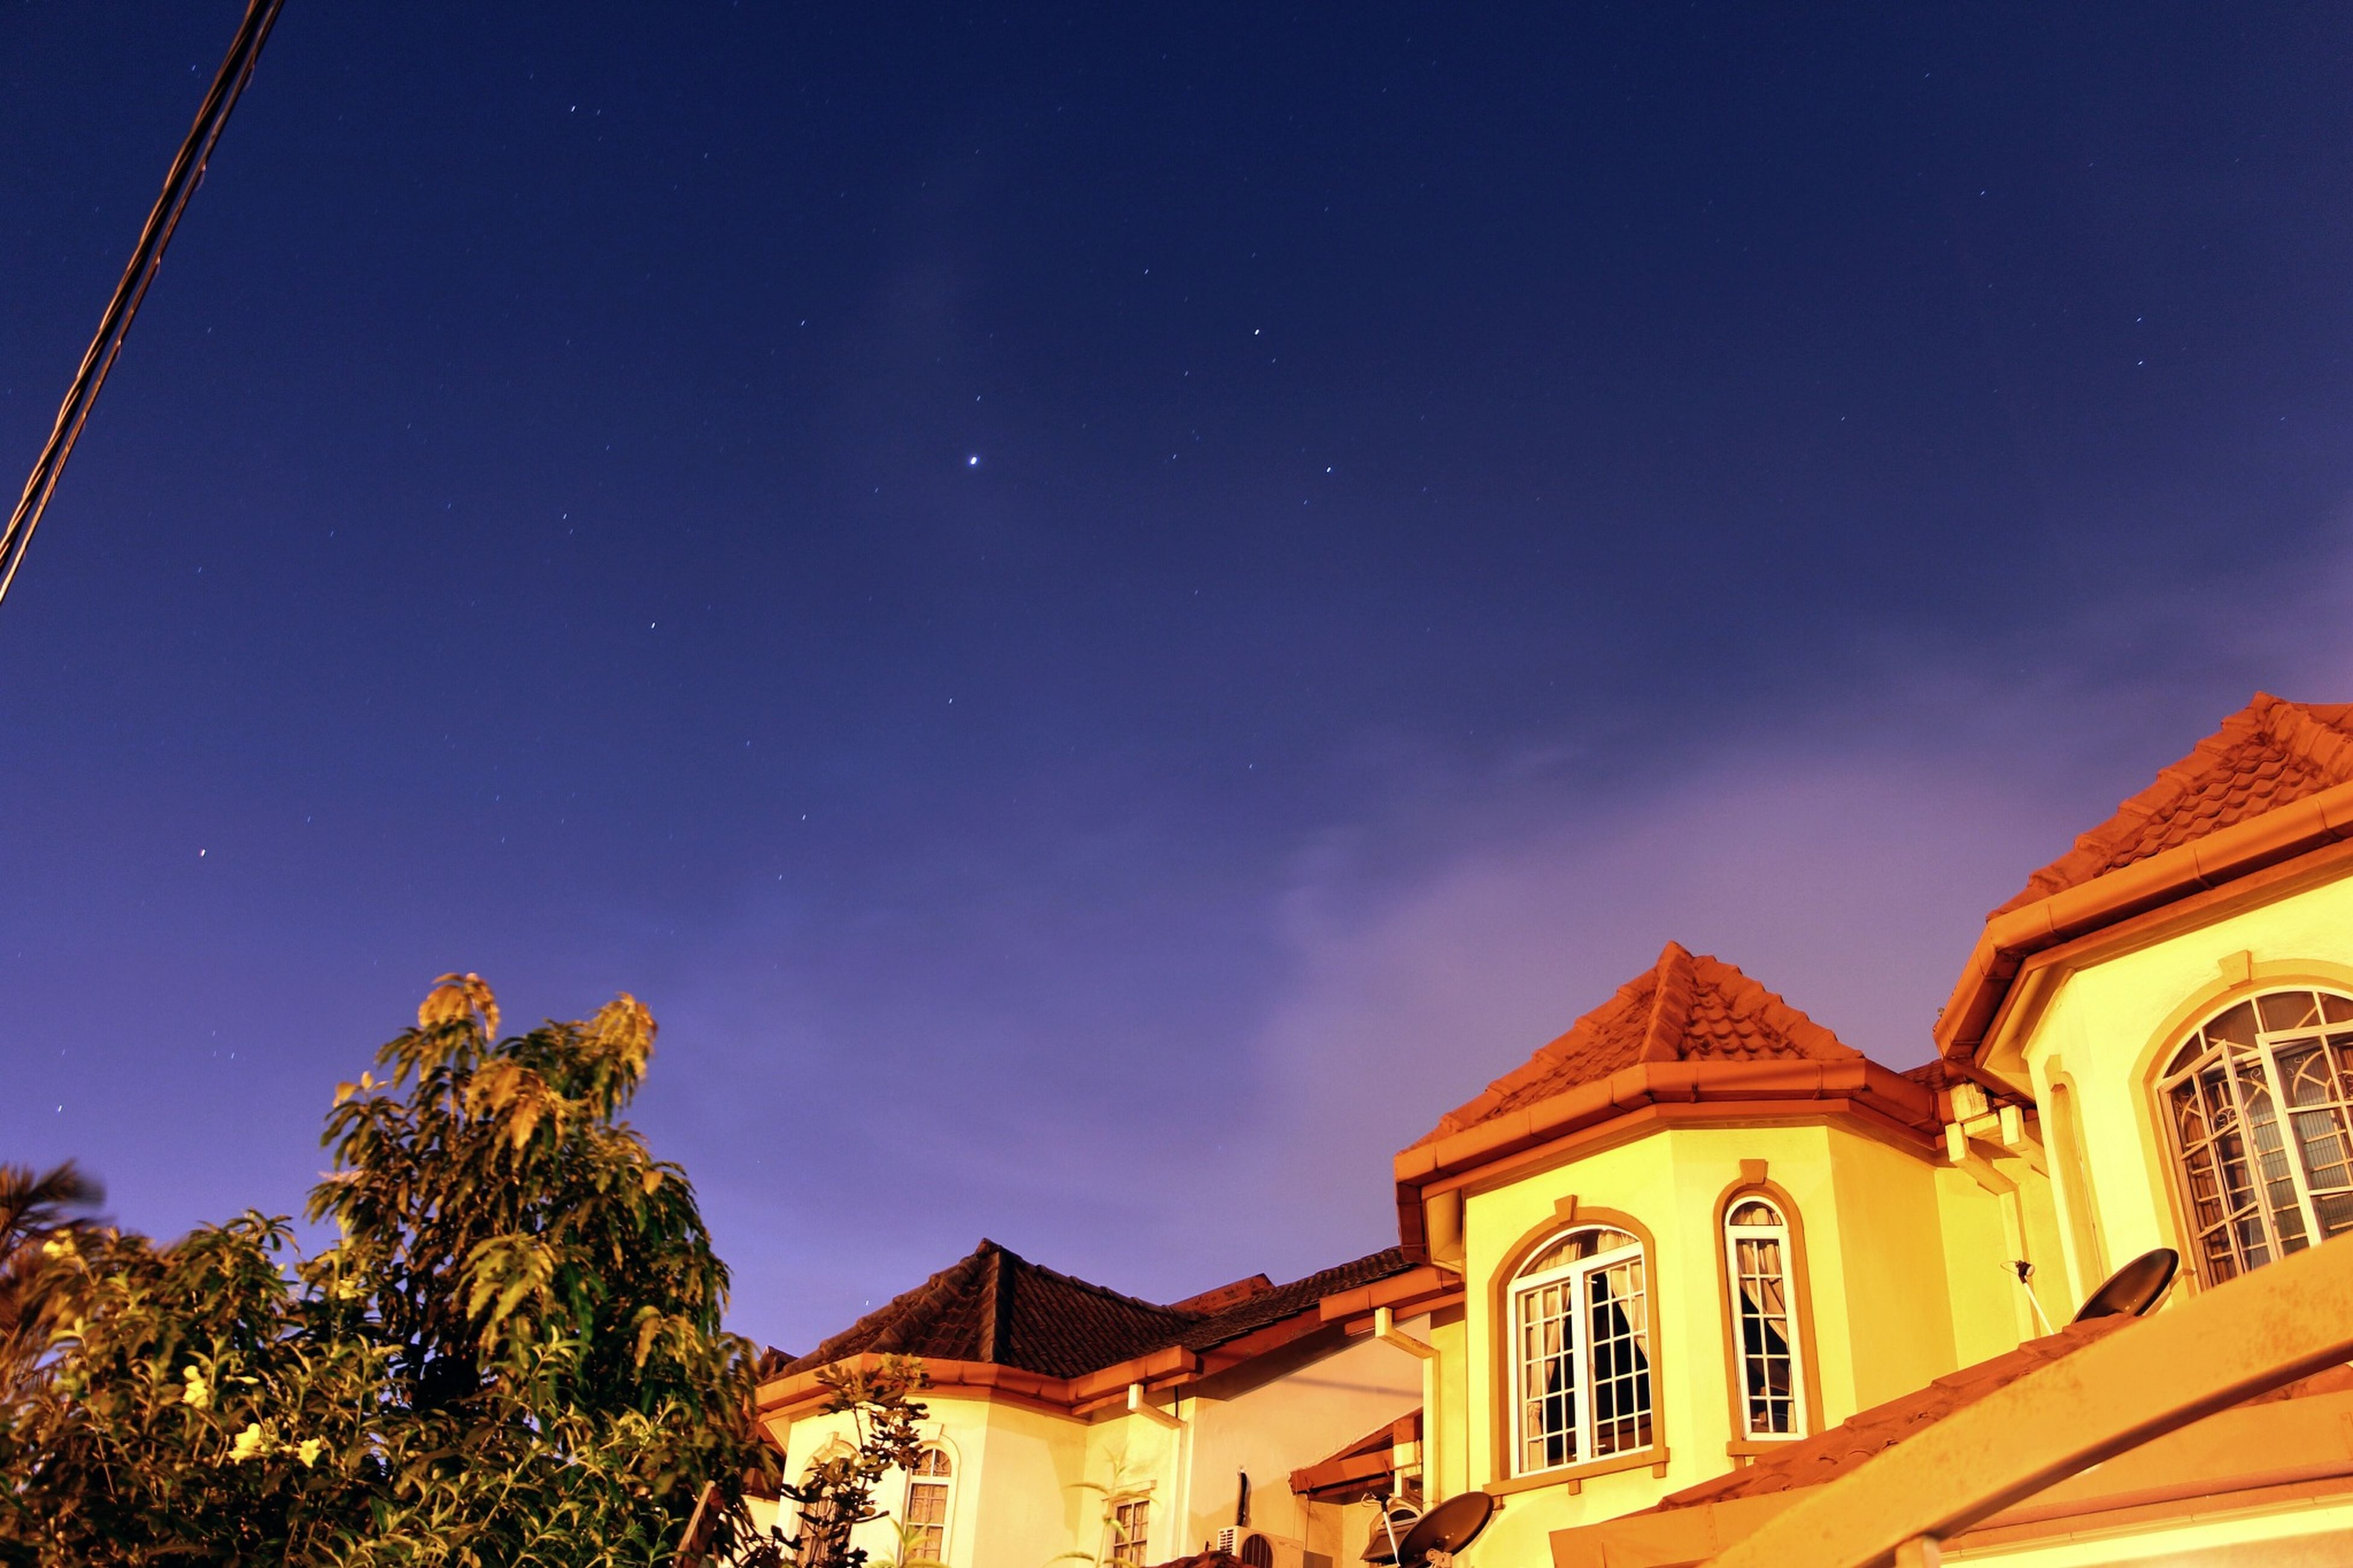 building exterior, architecture, built structure, low angle view, house, night, sky, blue, residential structure, tree, residential building, high section, moon, illuminated, outdoors, building, clear sky, window, street light, no people